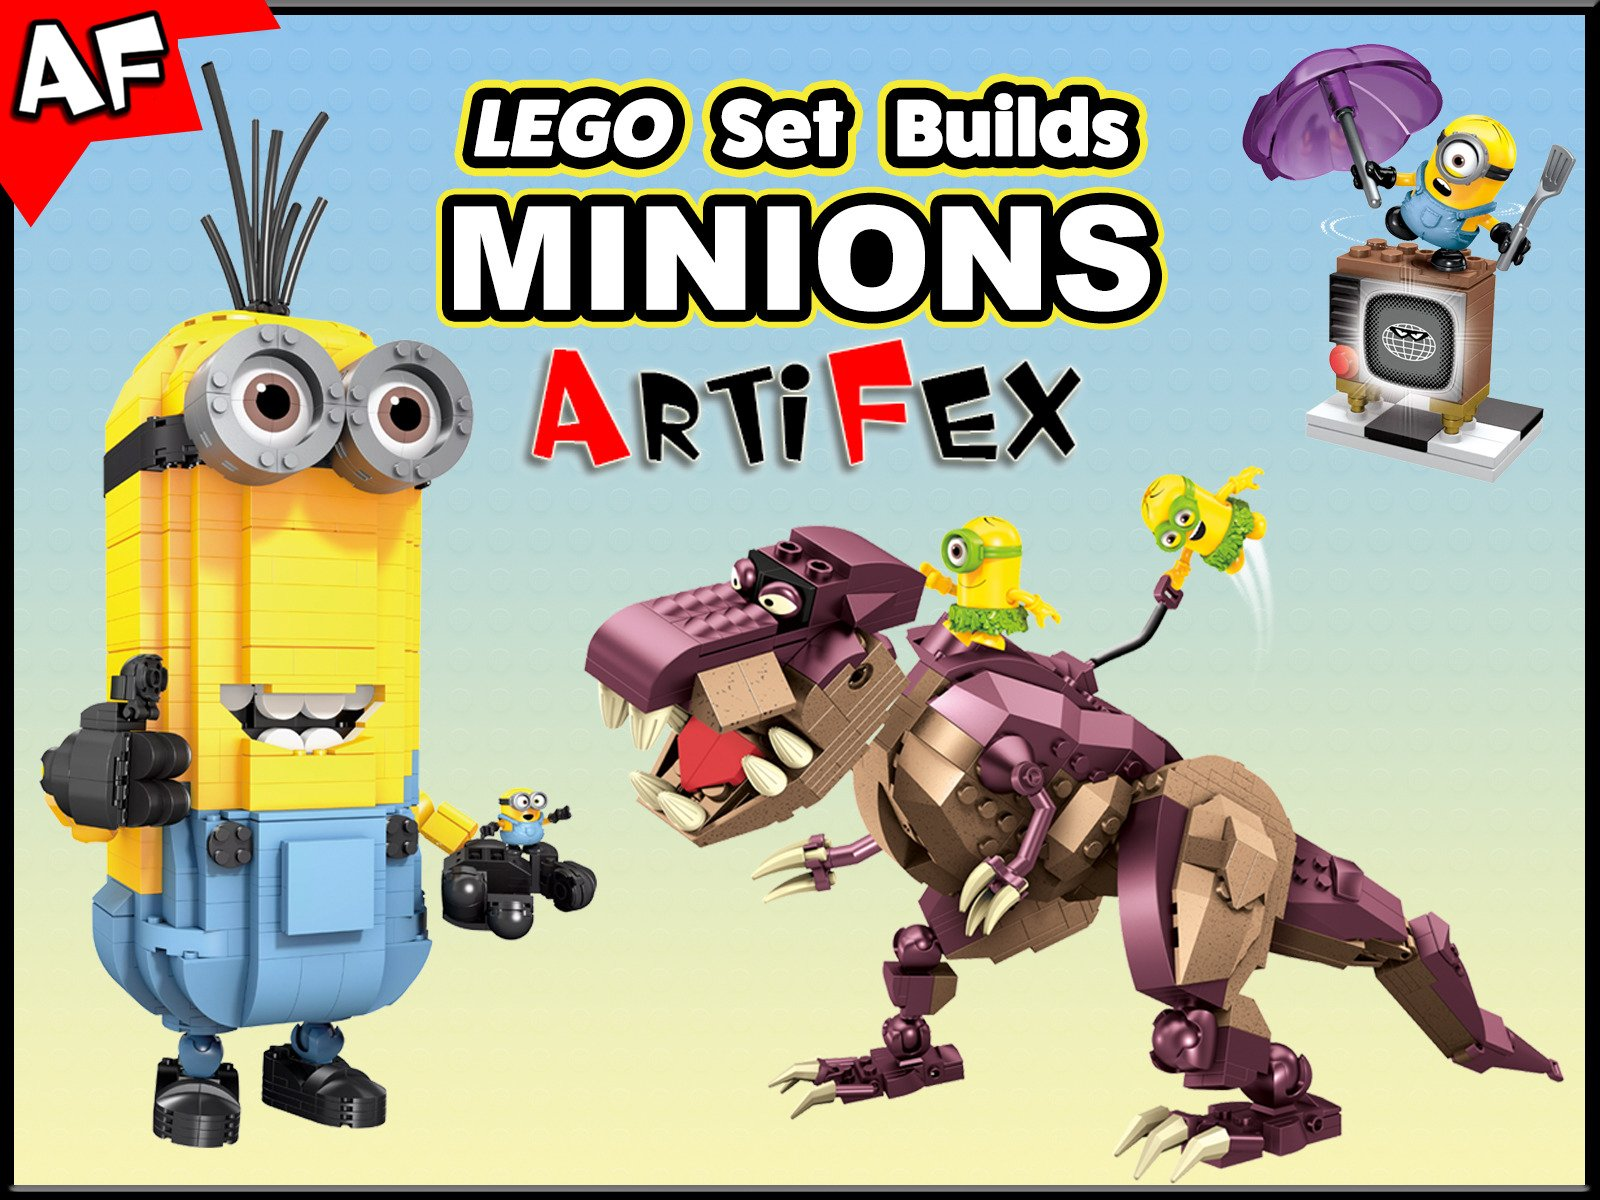 Clip: Lego Set Builds Minions - Season 1